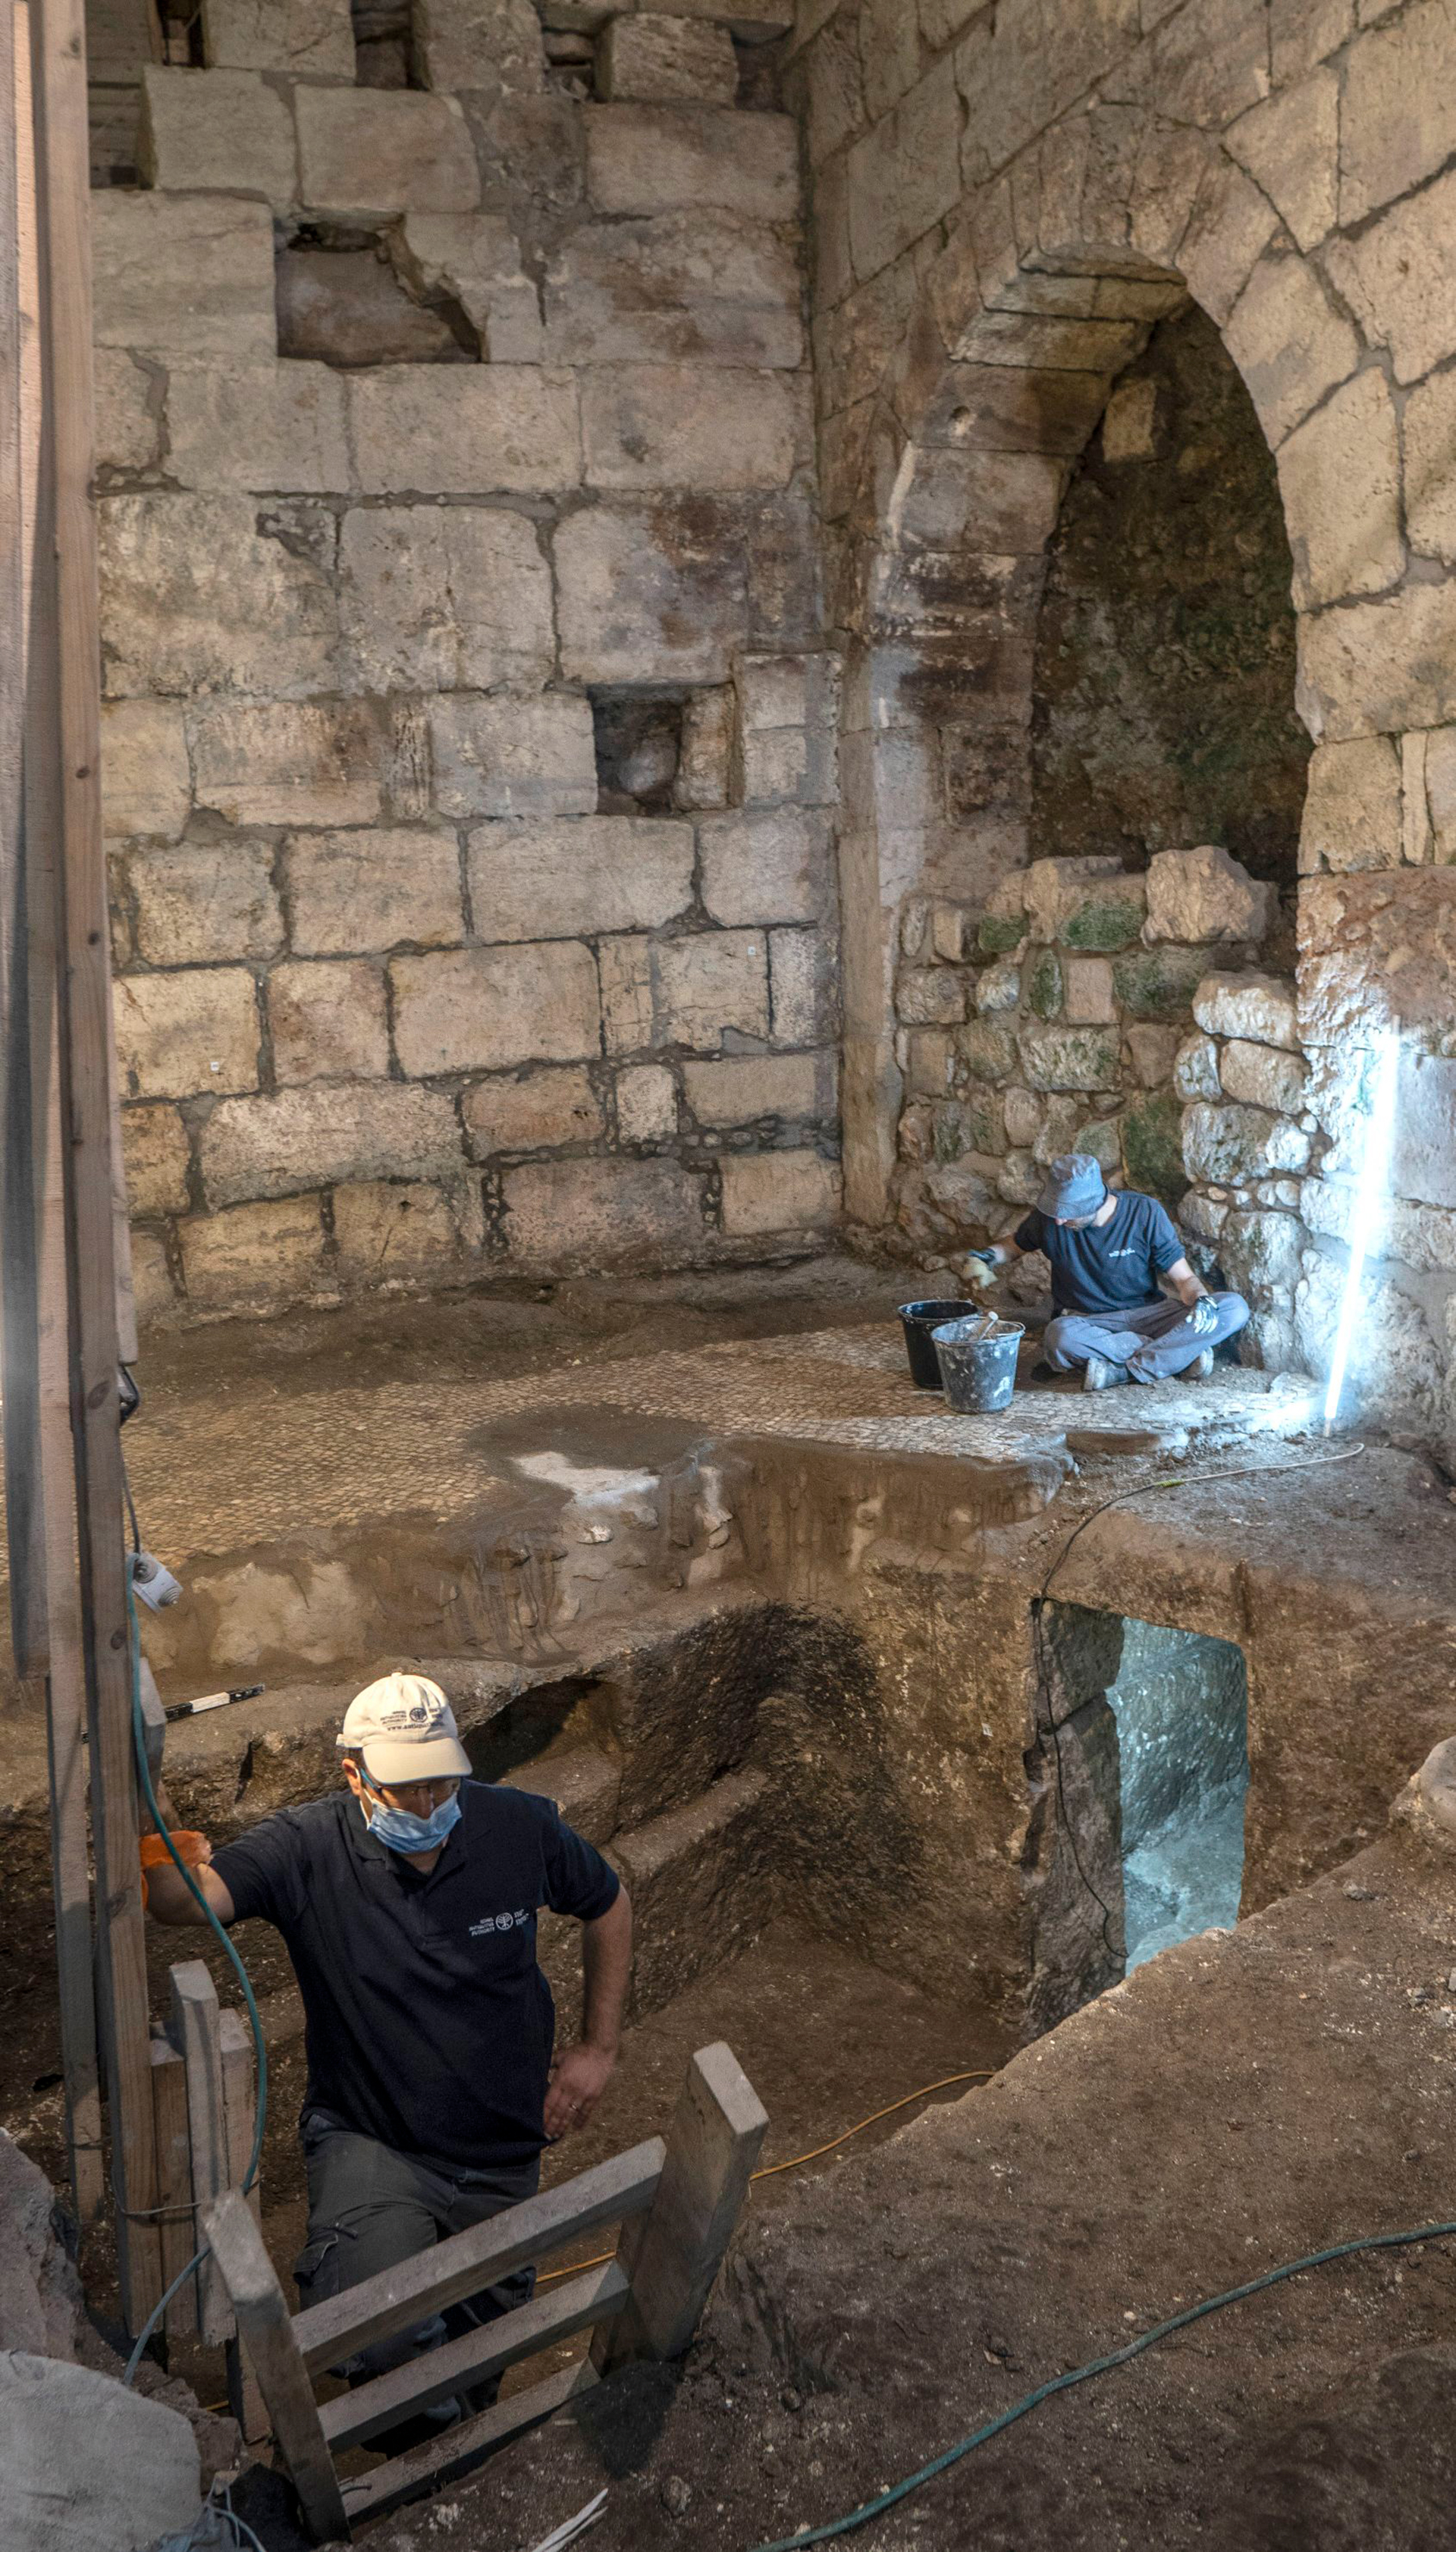 (Crédito: Israel Antiquities Authority)